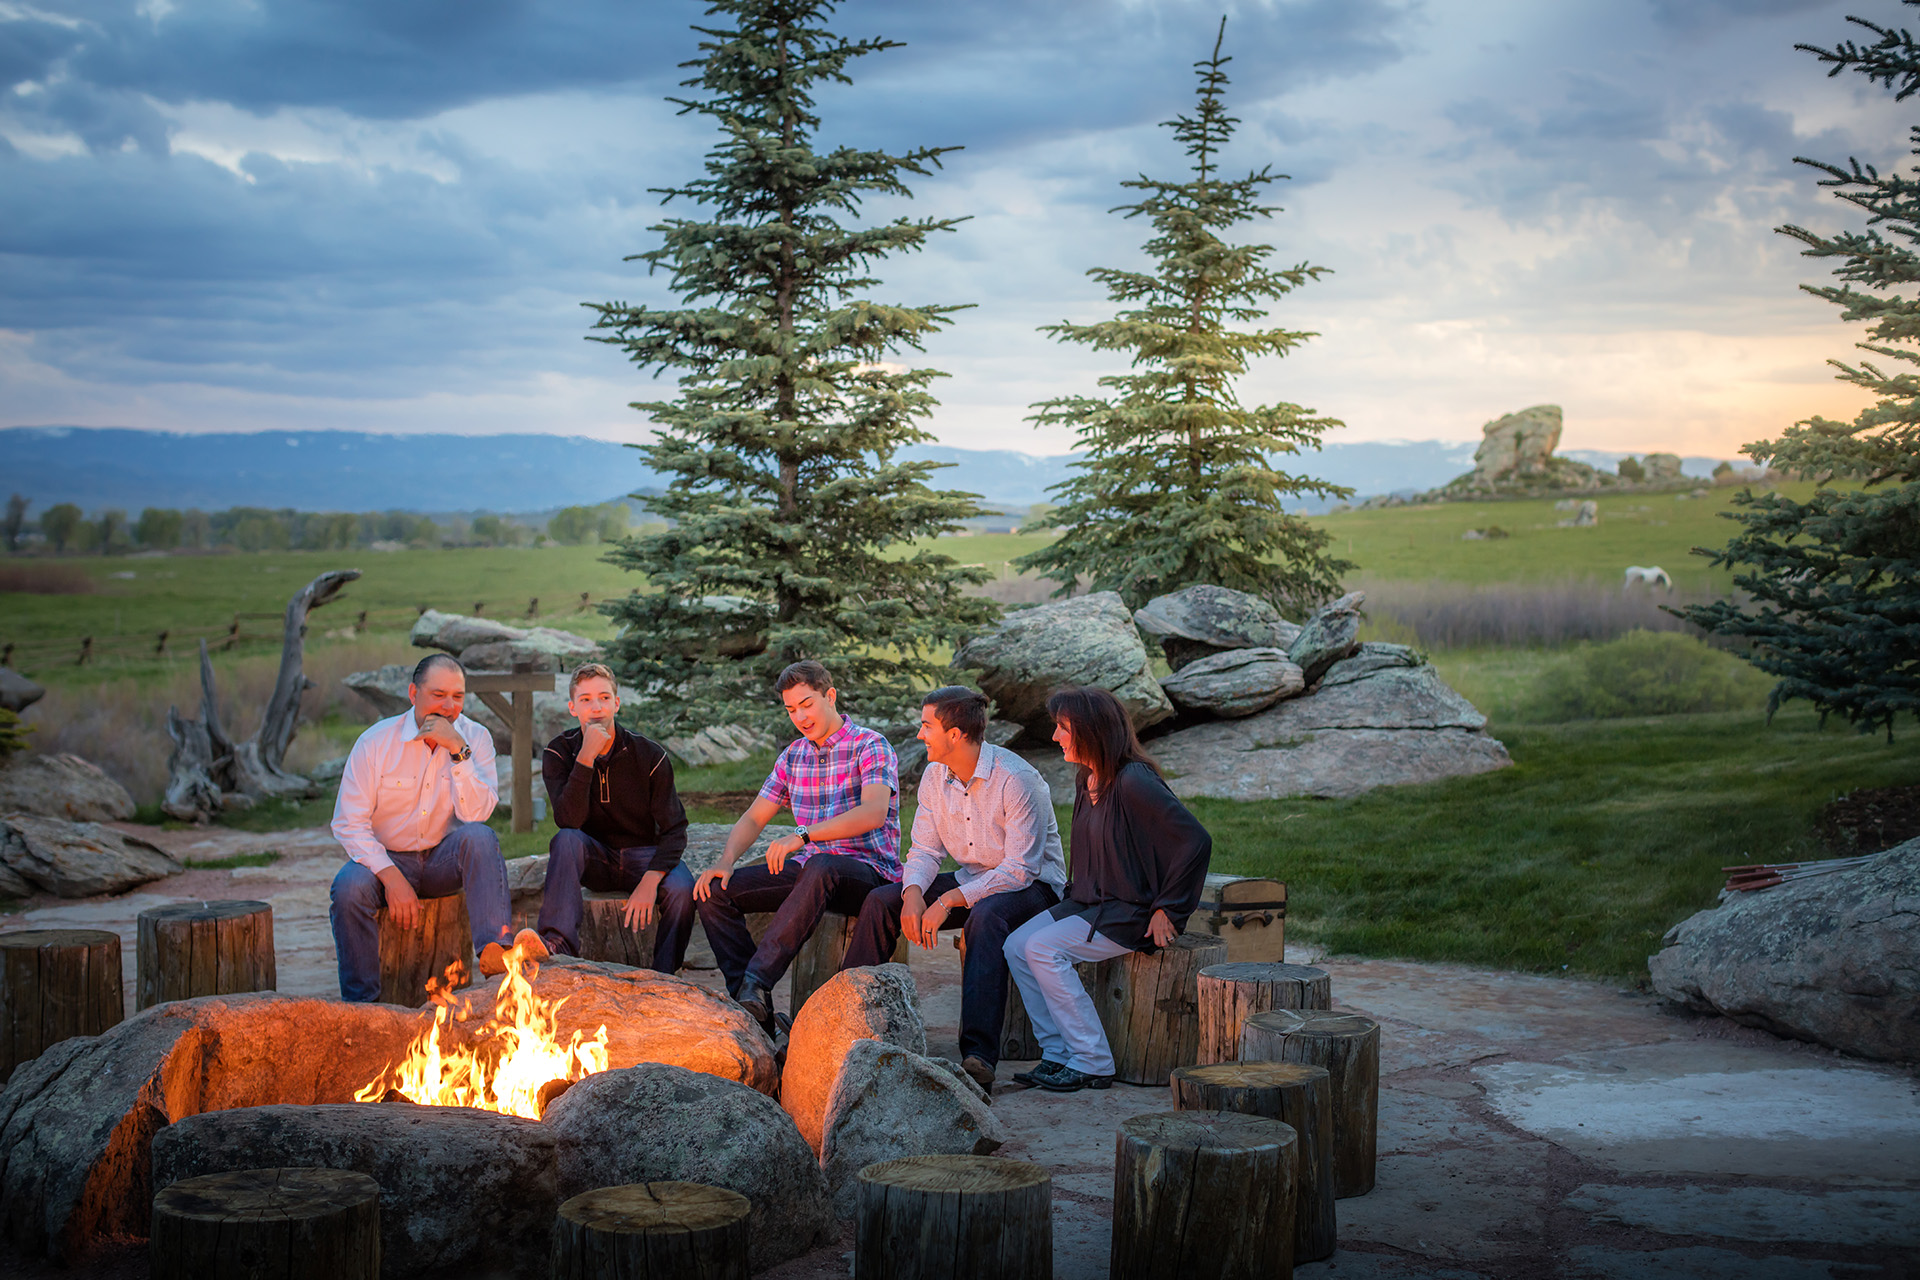 Family of five sitting around a campfire at dusk.